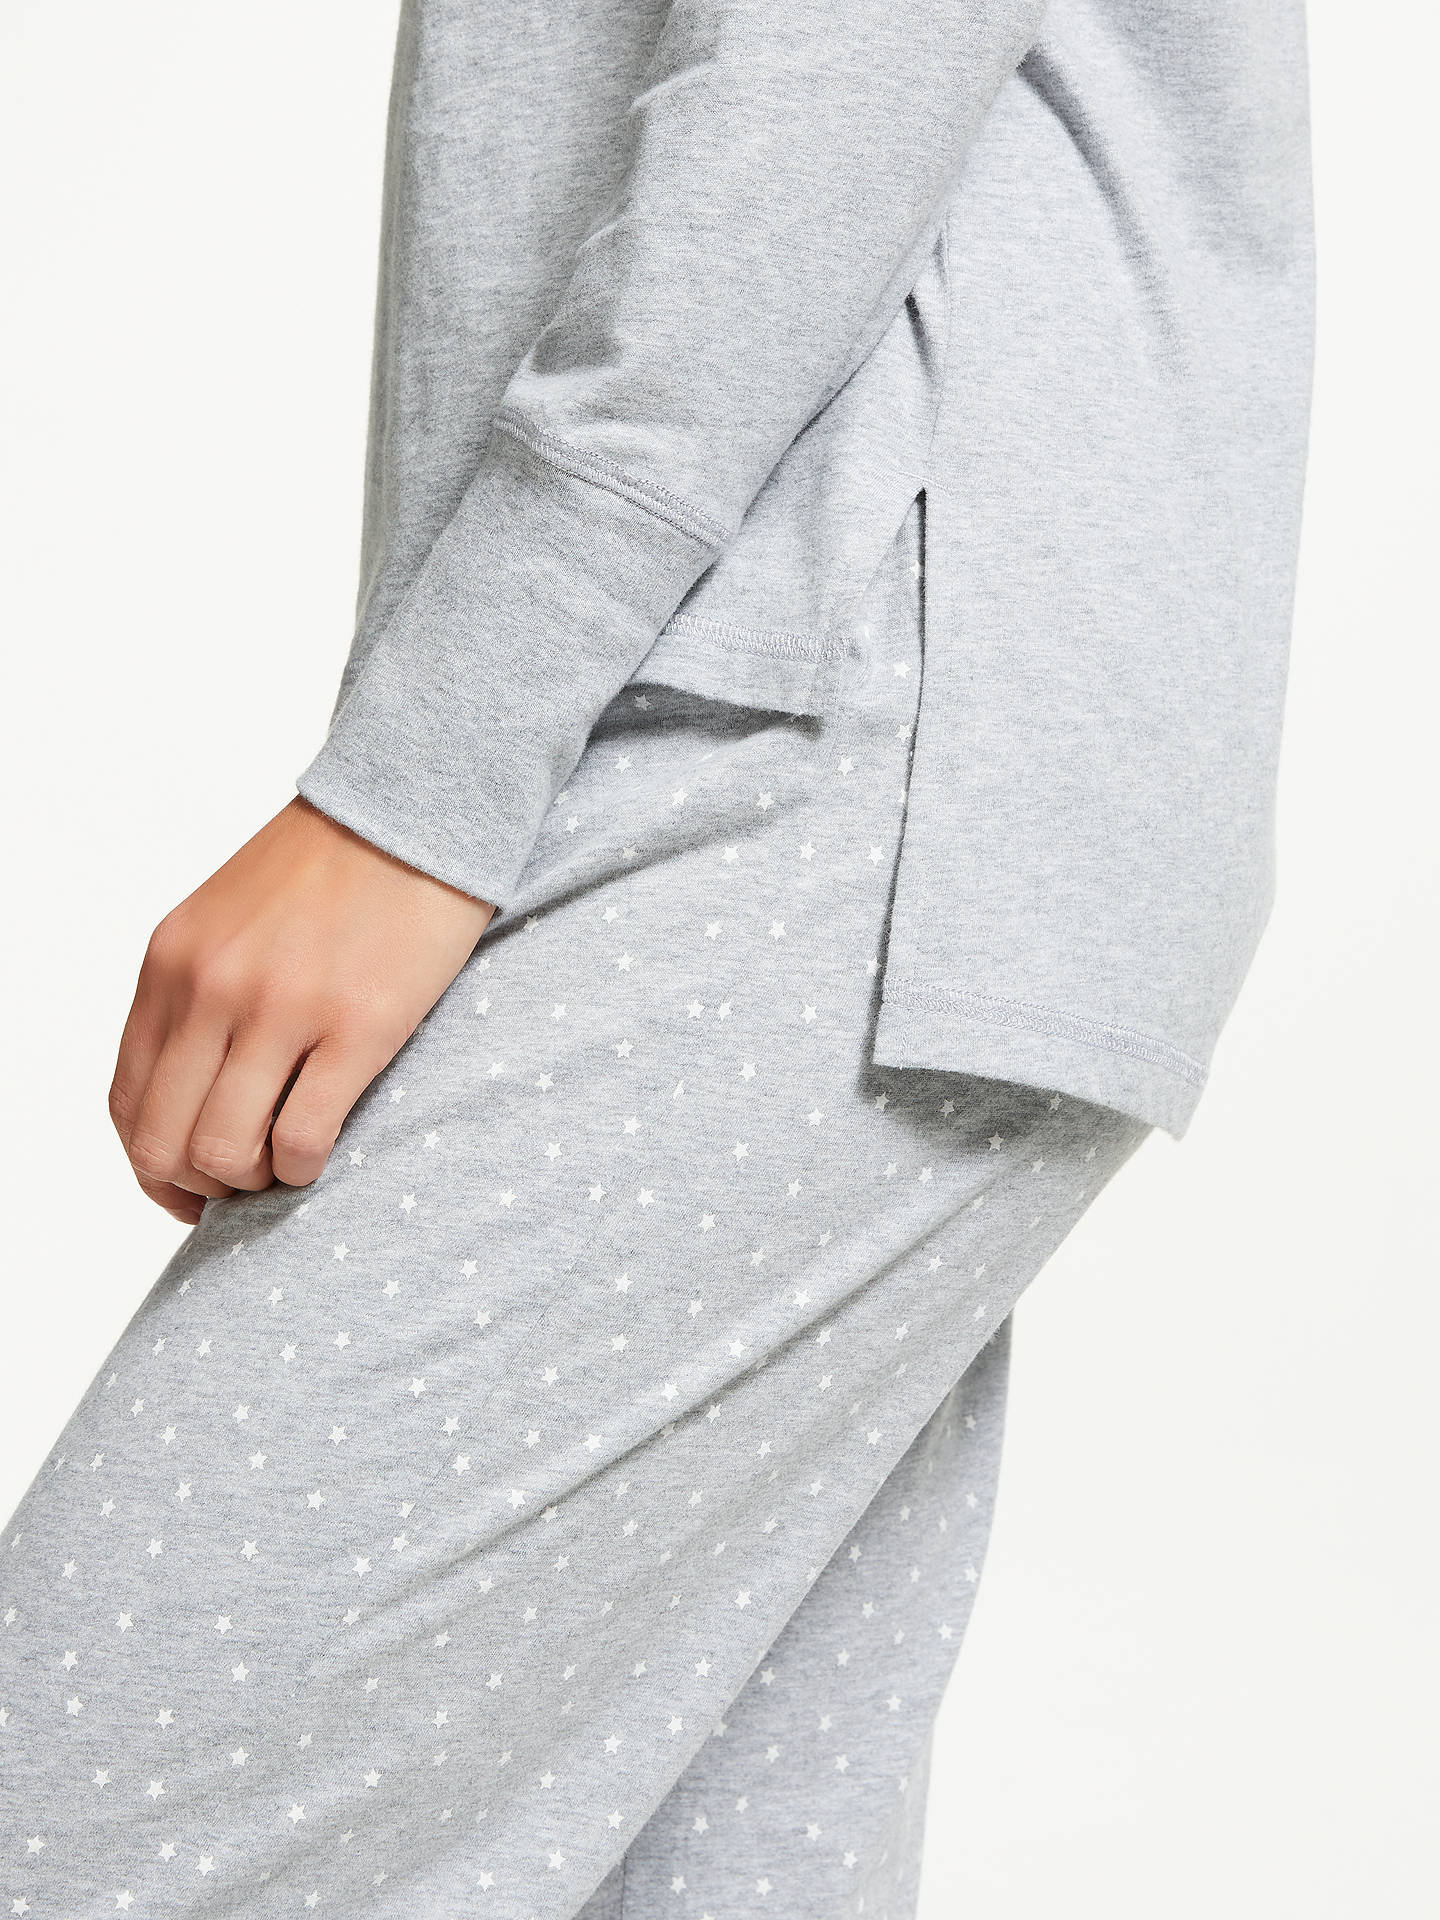 BuyJohn Lewis & Partners Furry Star Pyjama Set, Grey, 8 Online at johnlewis.com